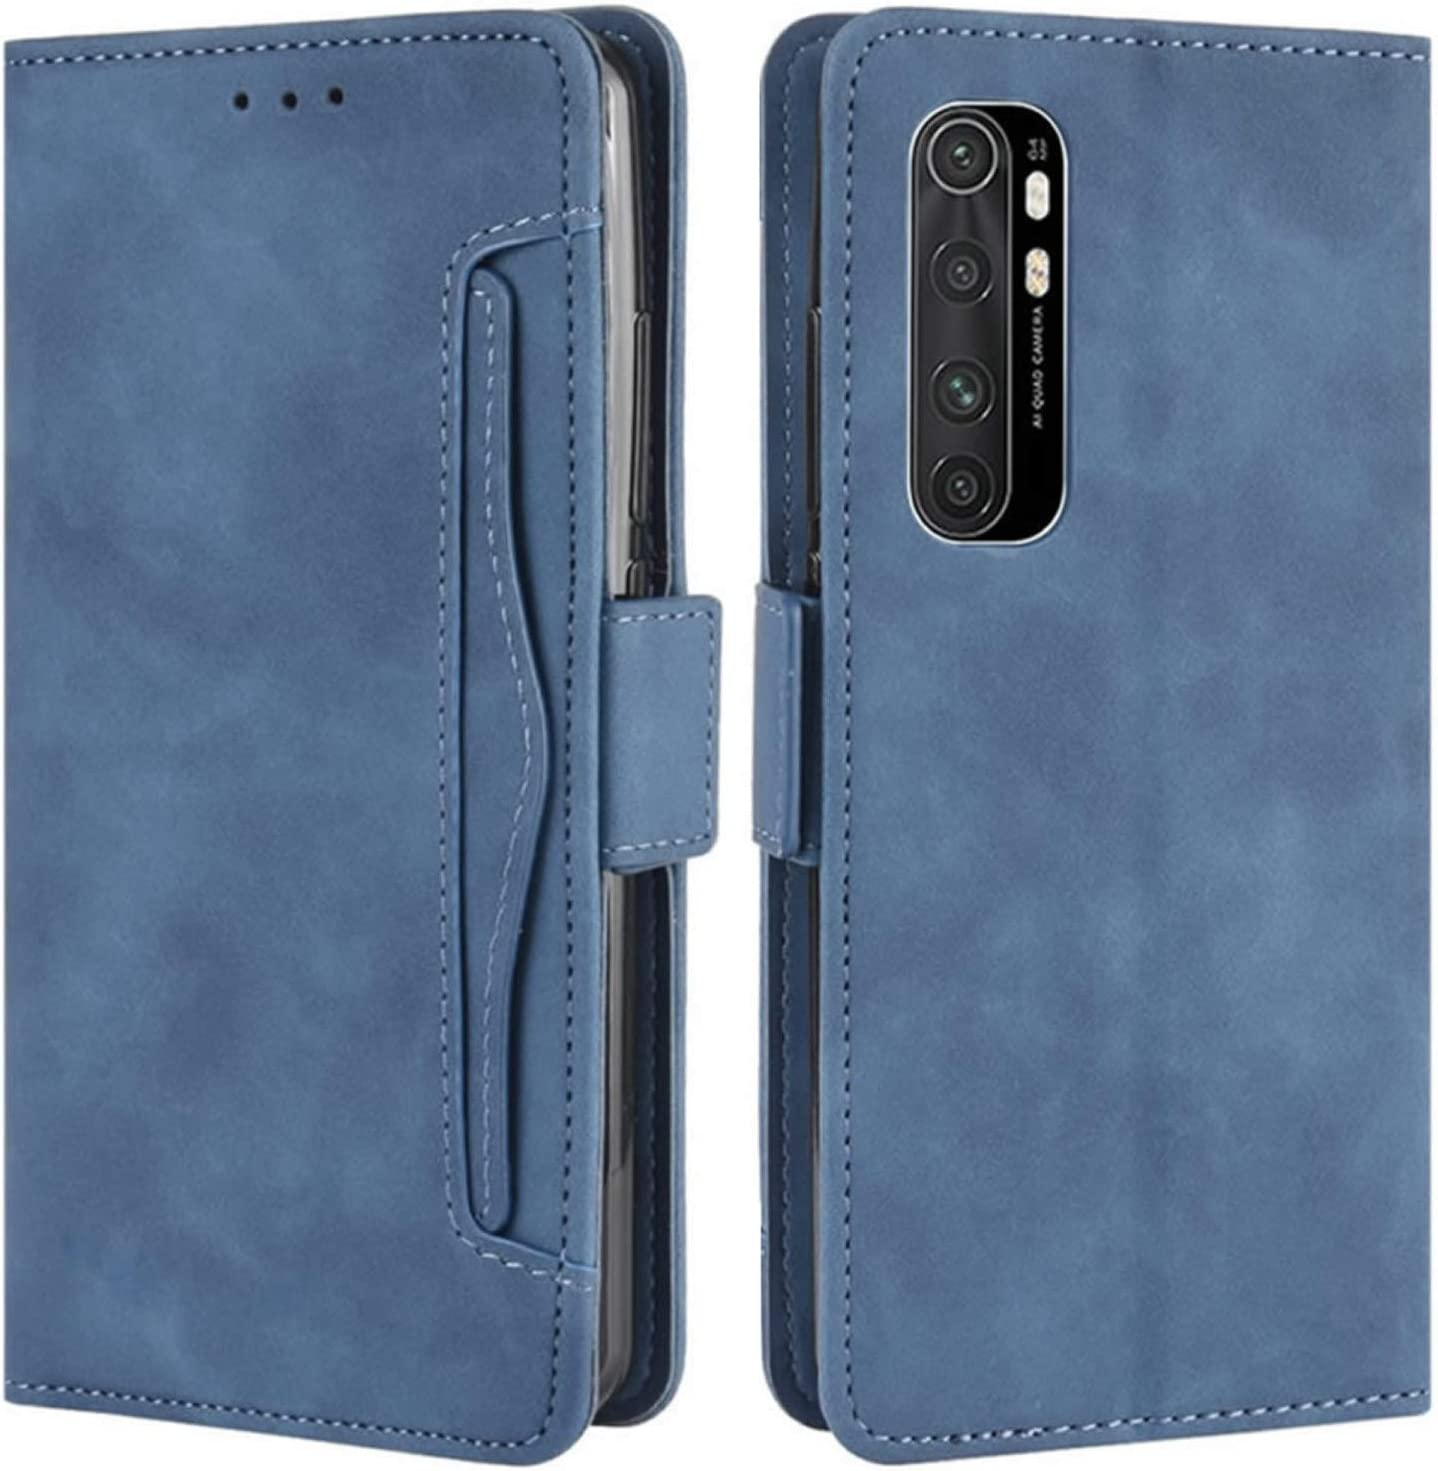 PU//TPU Flip Leather Wallet Cover TANYO Case for Xiaomi Mi Note 10 Lite Premium 3D Butterfly Phone Shell with Cash /& Card Slots Blue